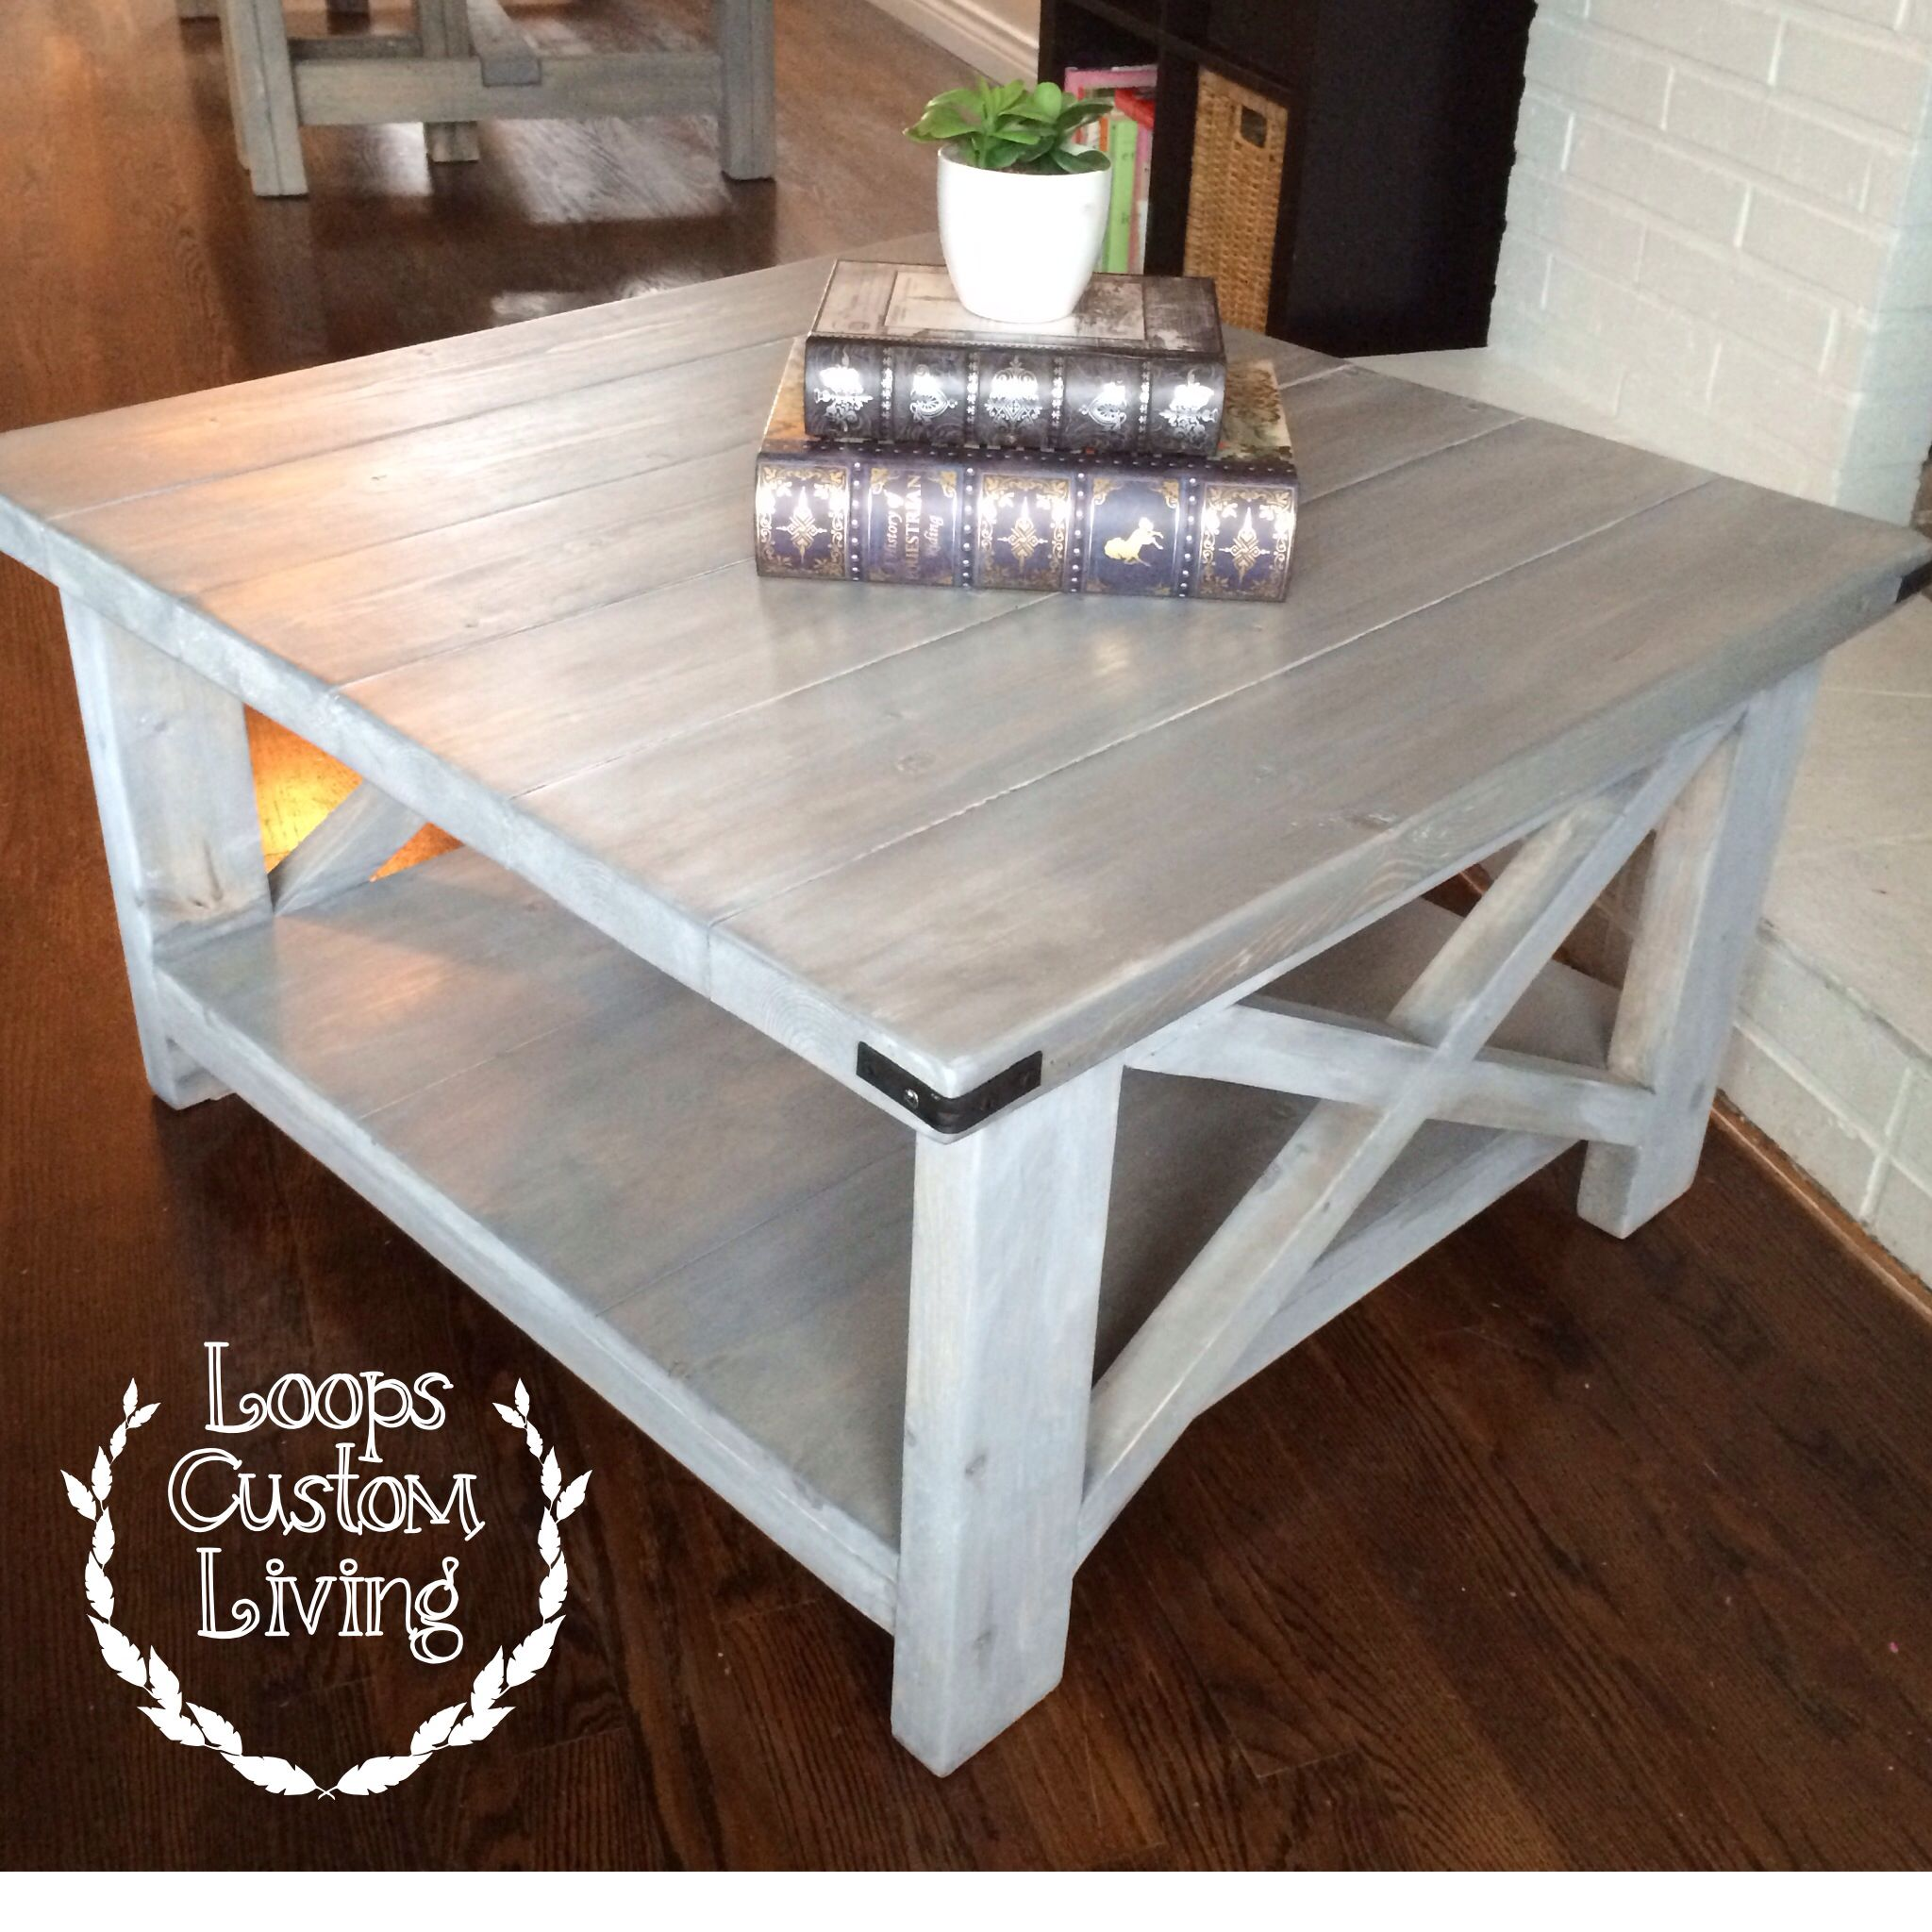 White washed grey industrial square coffee tableDIY